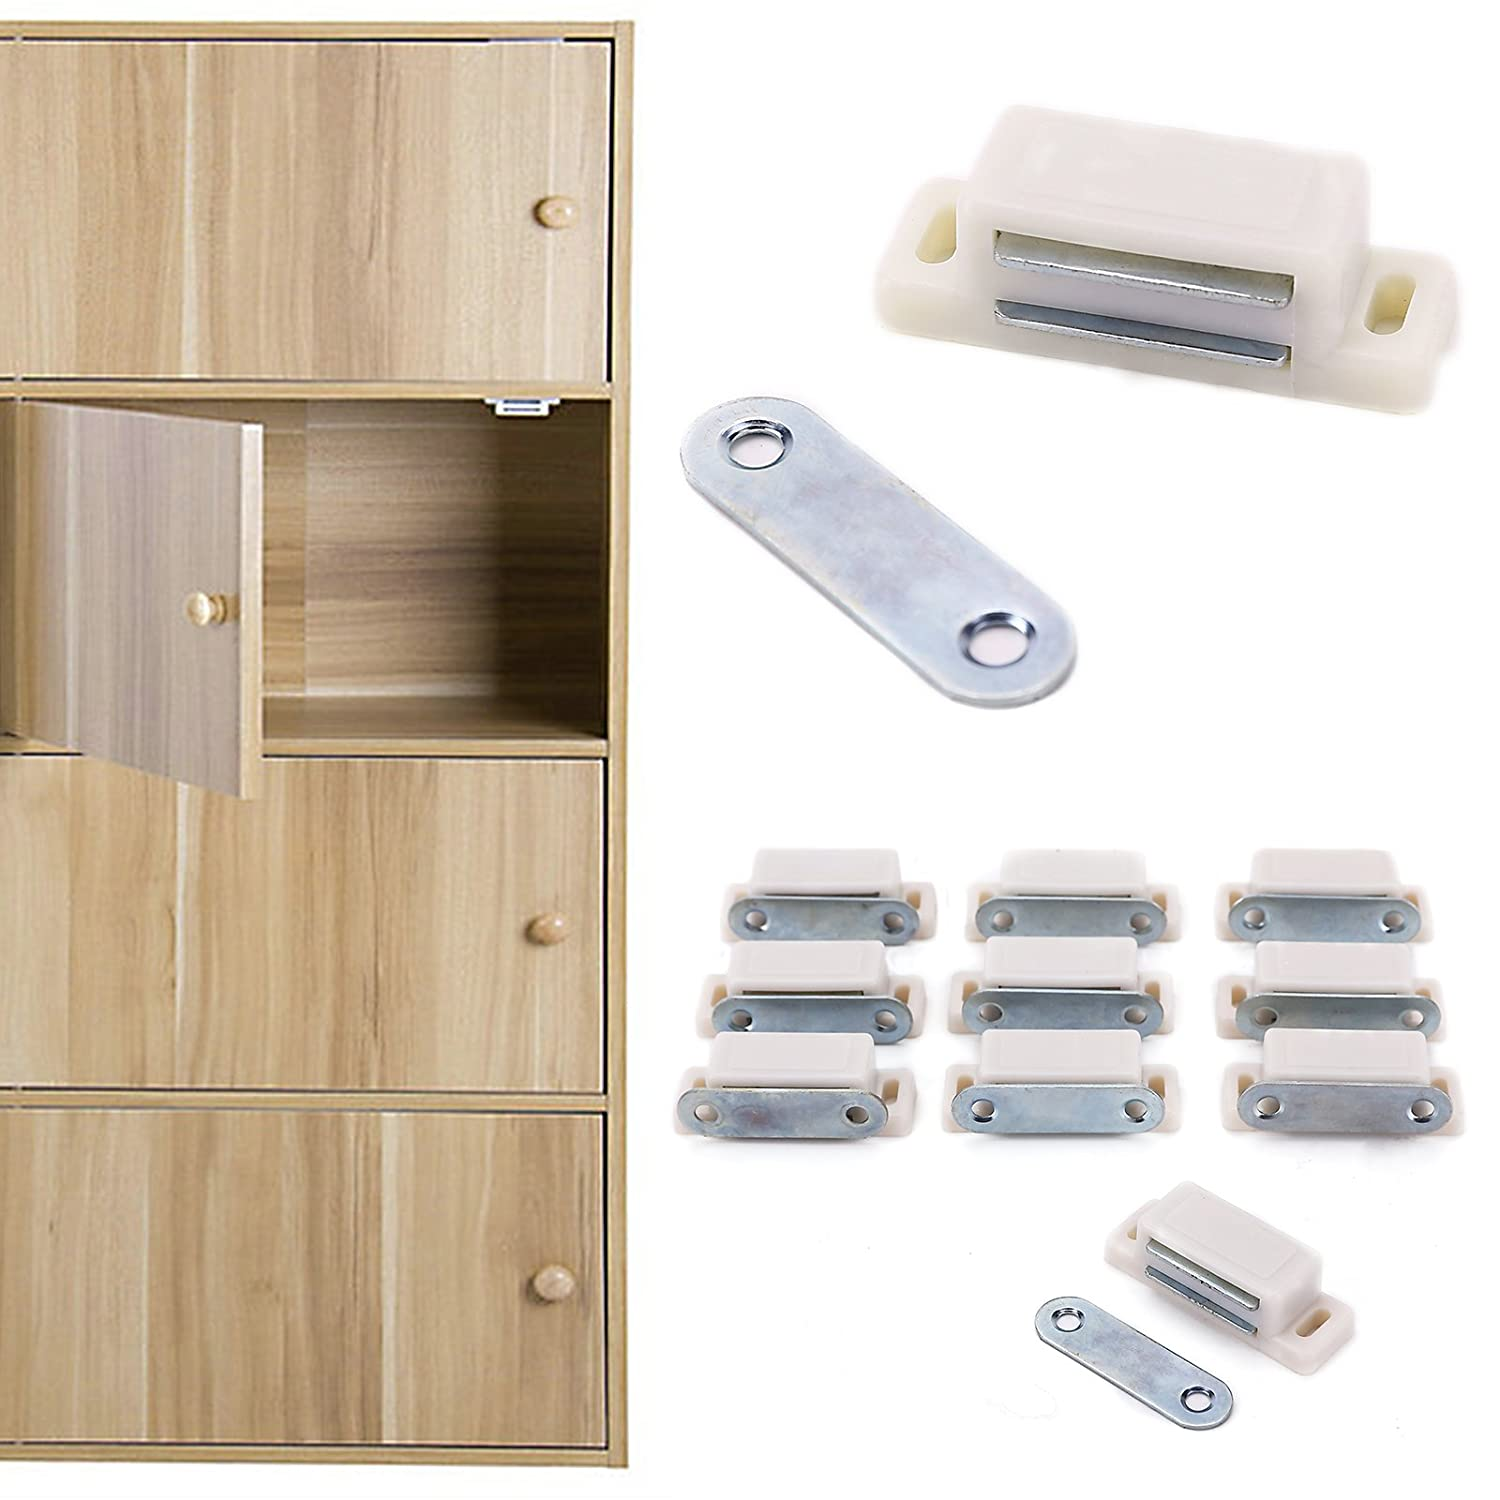 10x Heavy Duty Cupboard Cabinet Door Magnetic Catch Latch Home